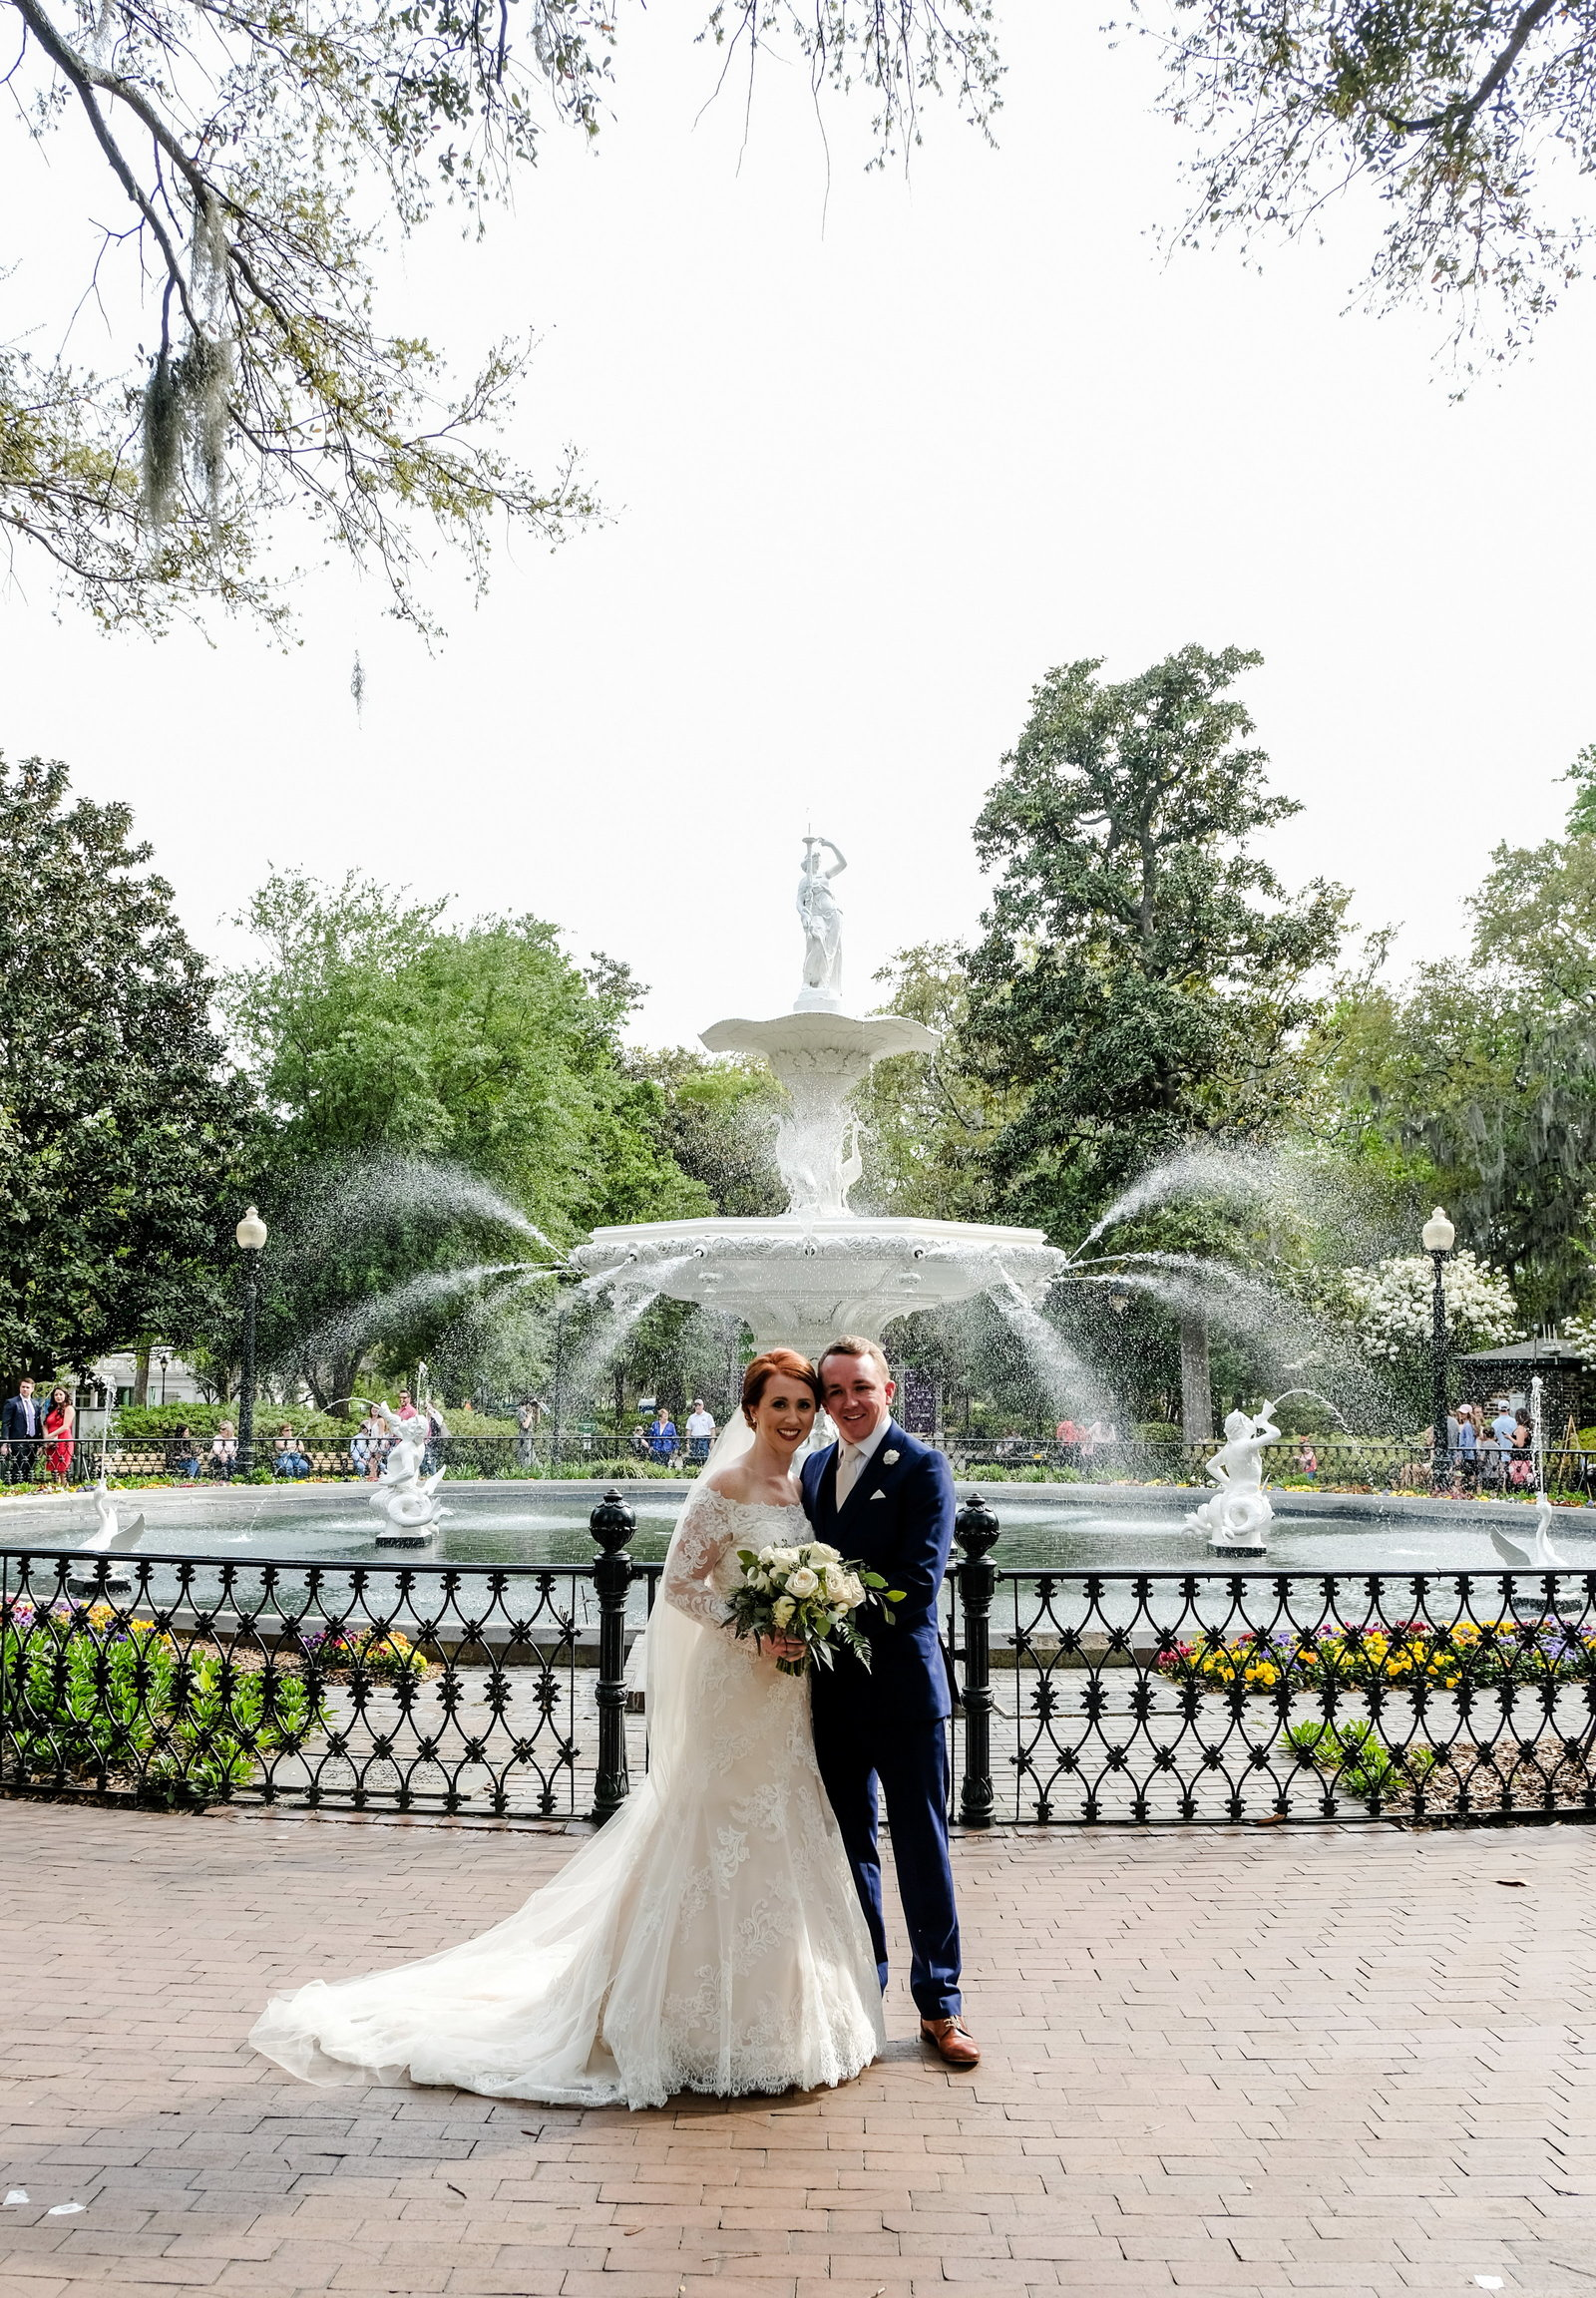 Savannah Wedding, Kathleen & Thomas, Bobbi Brinkman Photography